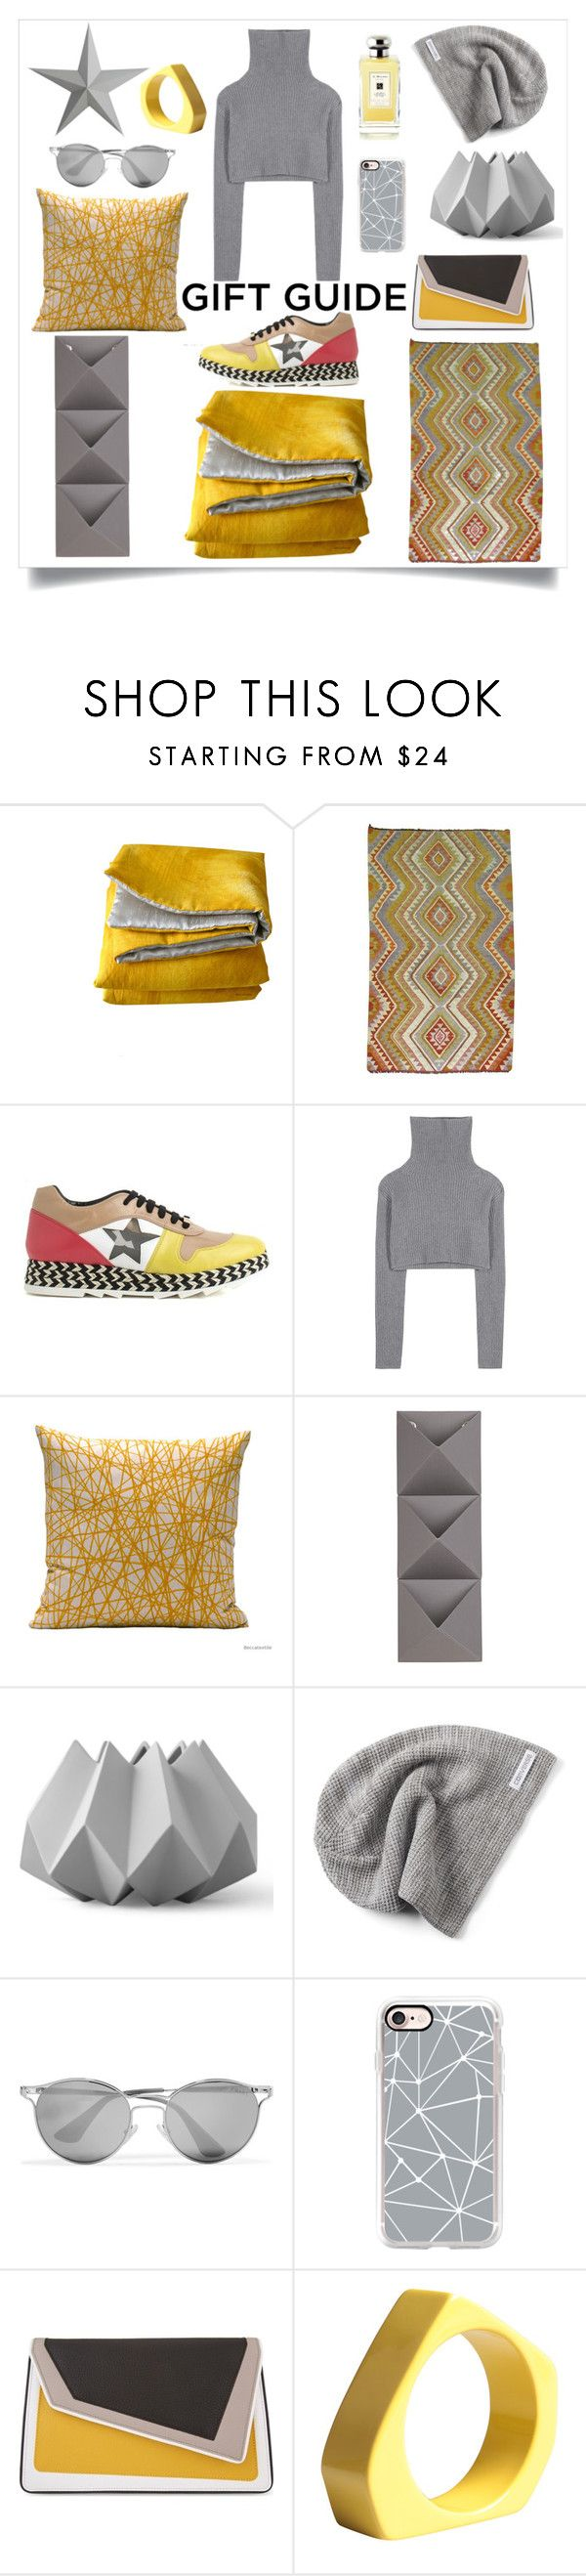 """""""Gift Guide: Besties"""" by beccallop ❤ liked on Polyvore featuring STELLA McCARTNEY, Valentino, Jo Malone, Umbra, Menu, Converse, Prada, Casetify, âme moi and Marni"""